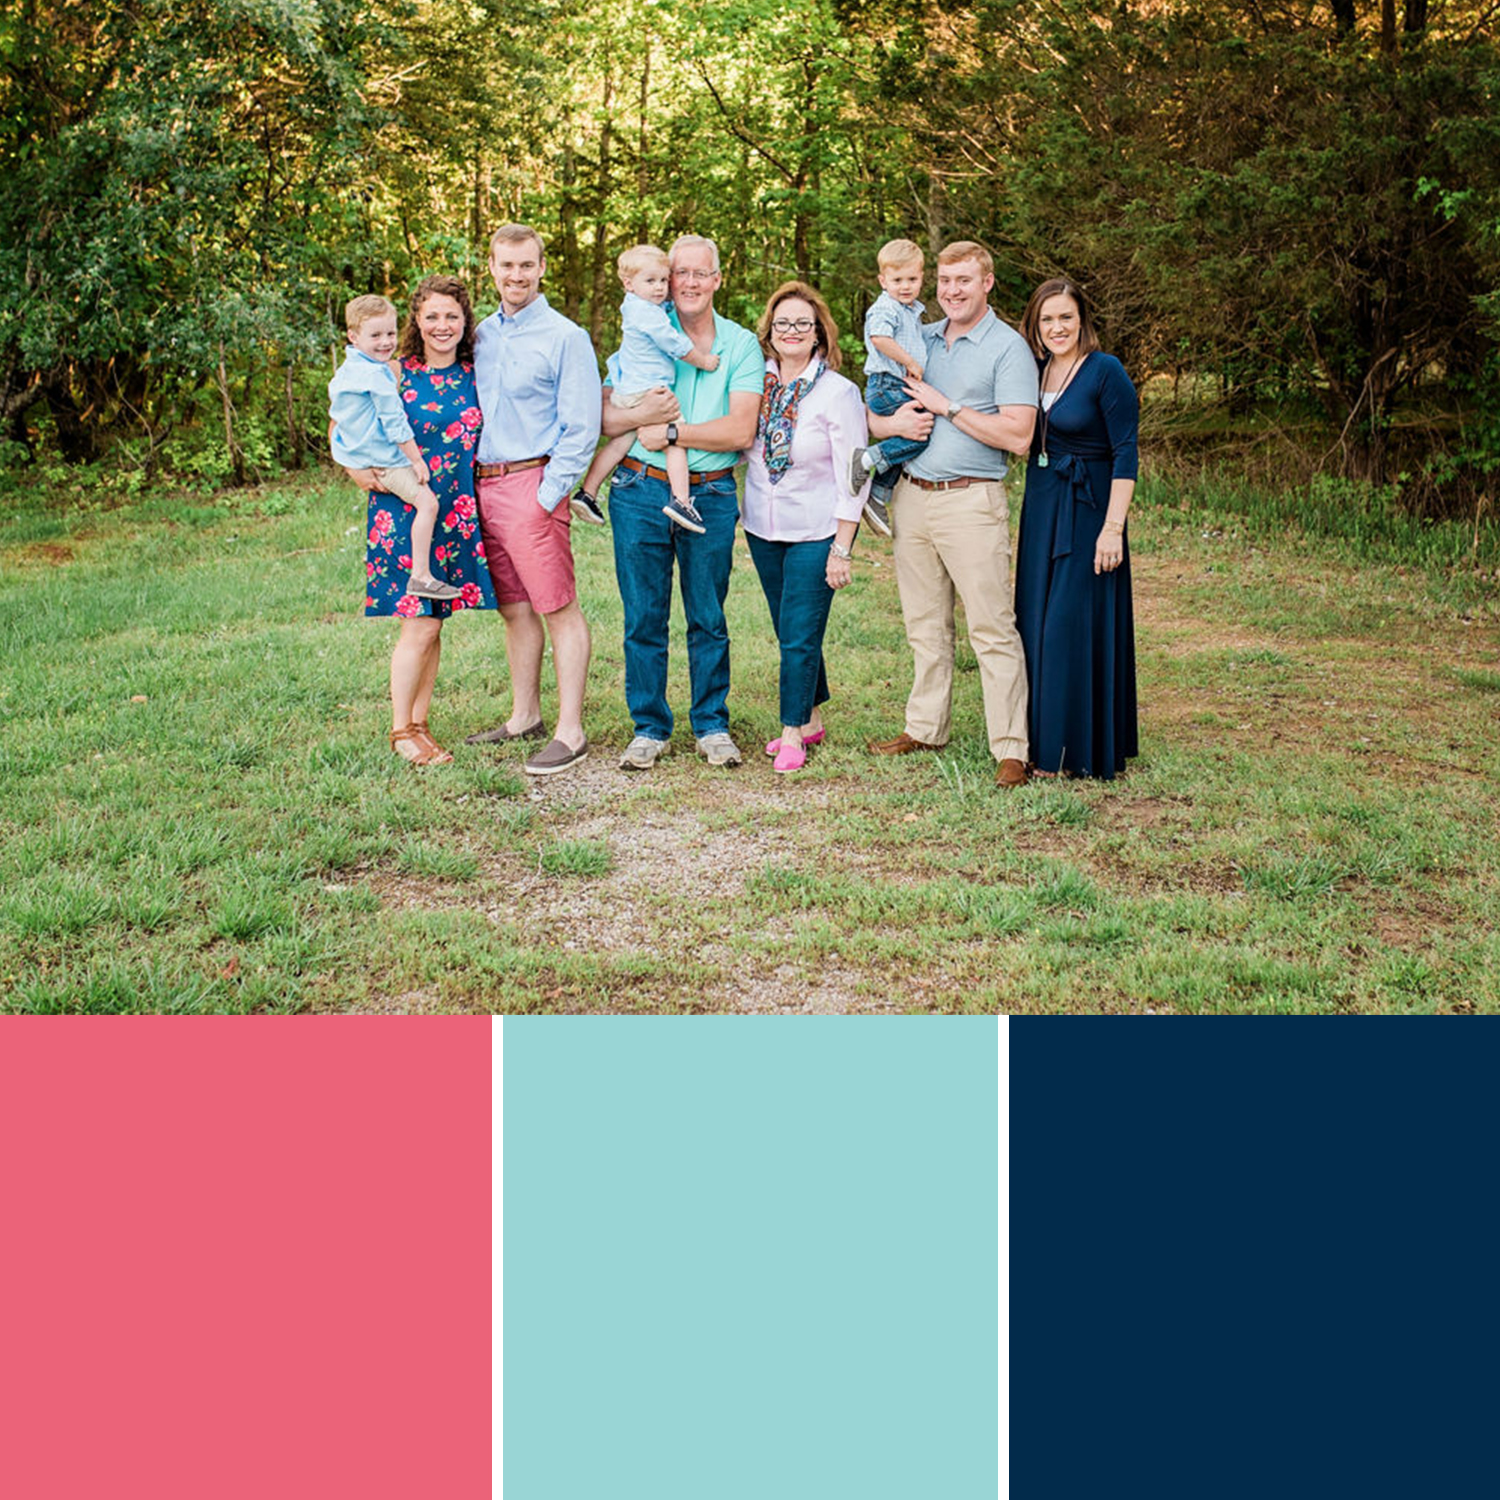 6+ FAMILY SESSION - When getting a big group together coordinating outfits can be a challenge.It is helpful to pick out a color or a color scheme and go from there. I usually suggest blue since everyone seems to have blue in their closets and add a coordinating color for some variation in your big group.When it comes to big groups be sure to communicate with each other on your outfits. Keep the patterns to a minimum - a whole group of people in clashing patterns would not photograph well.